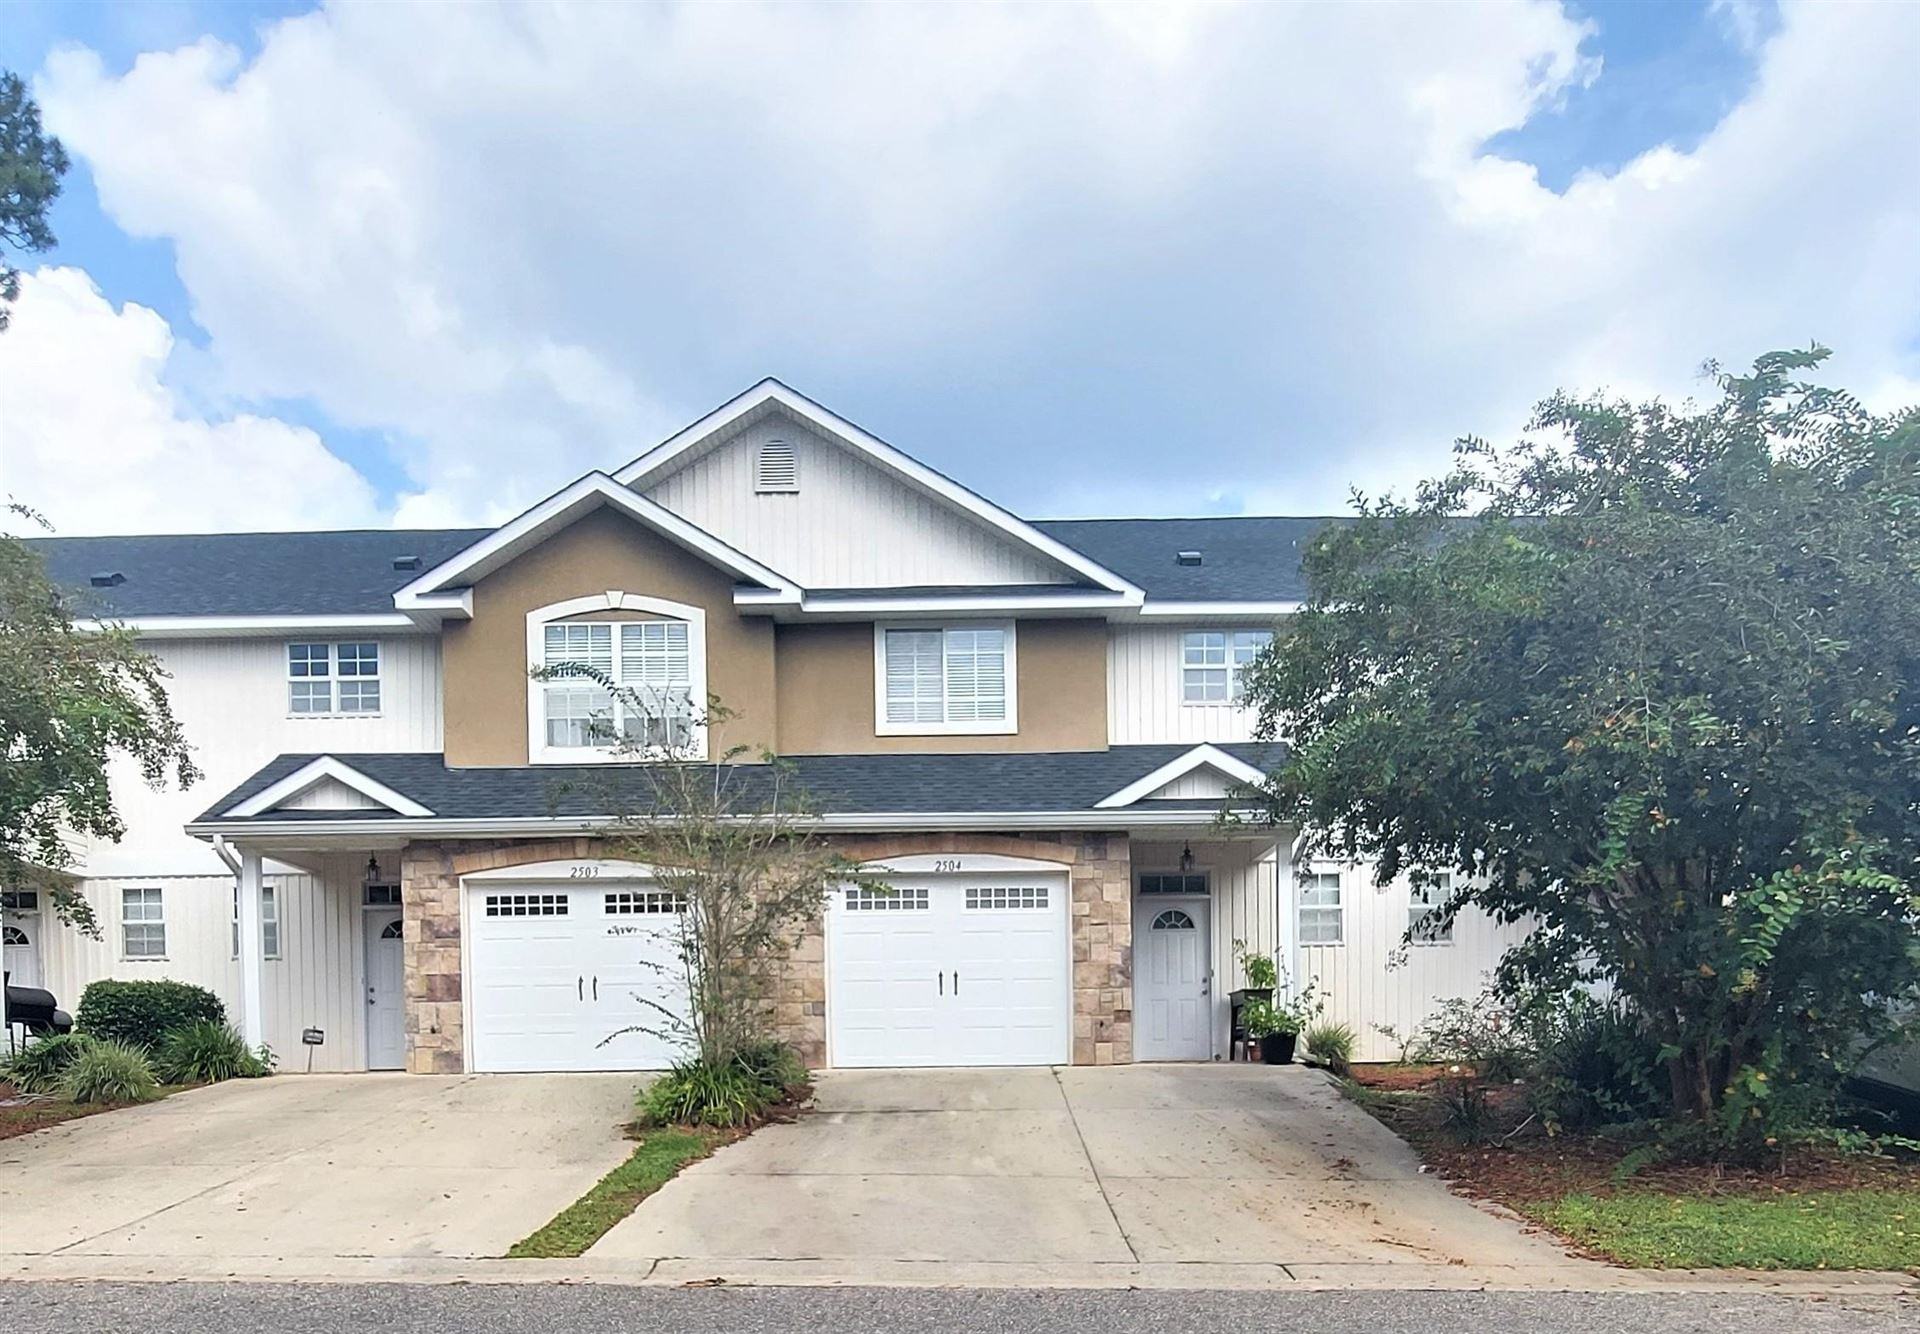 Photo of 1575 Paul Russell Road #2504, TALLAHASSEE, FL 32301 (MLS # 337064)